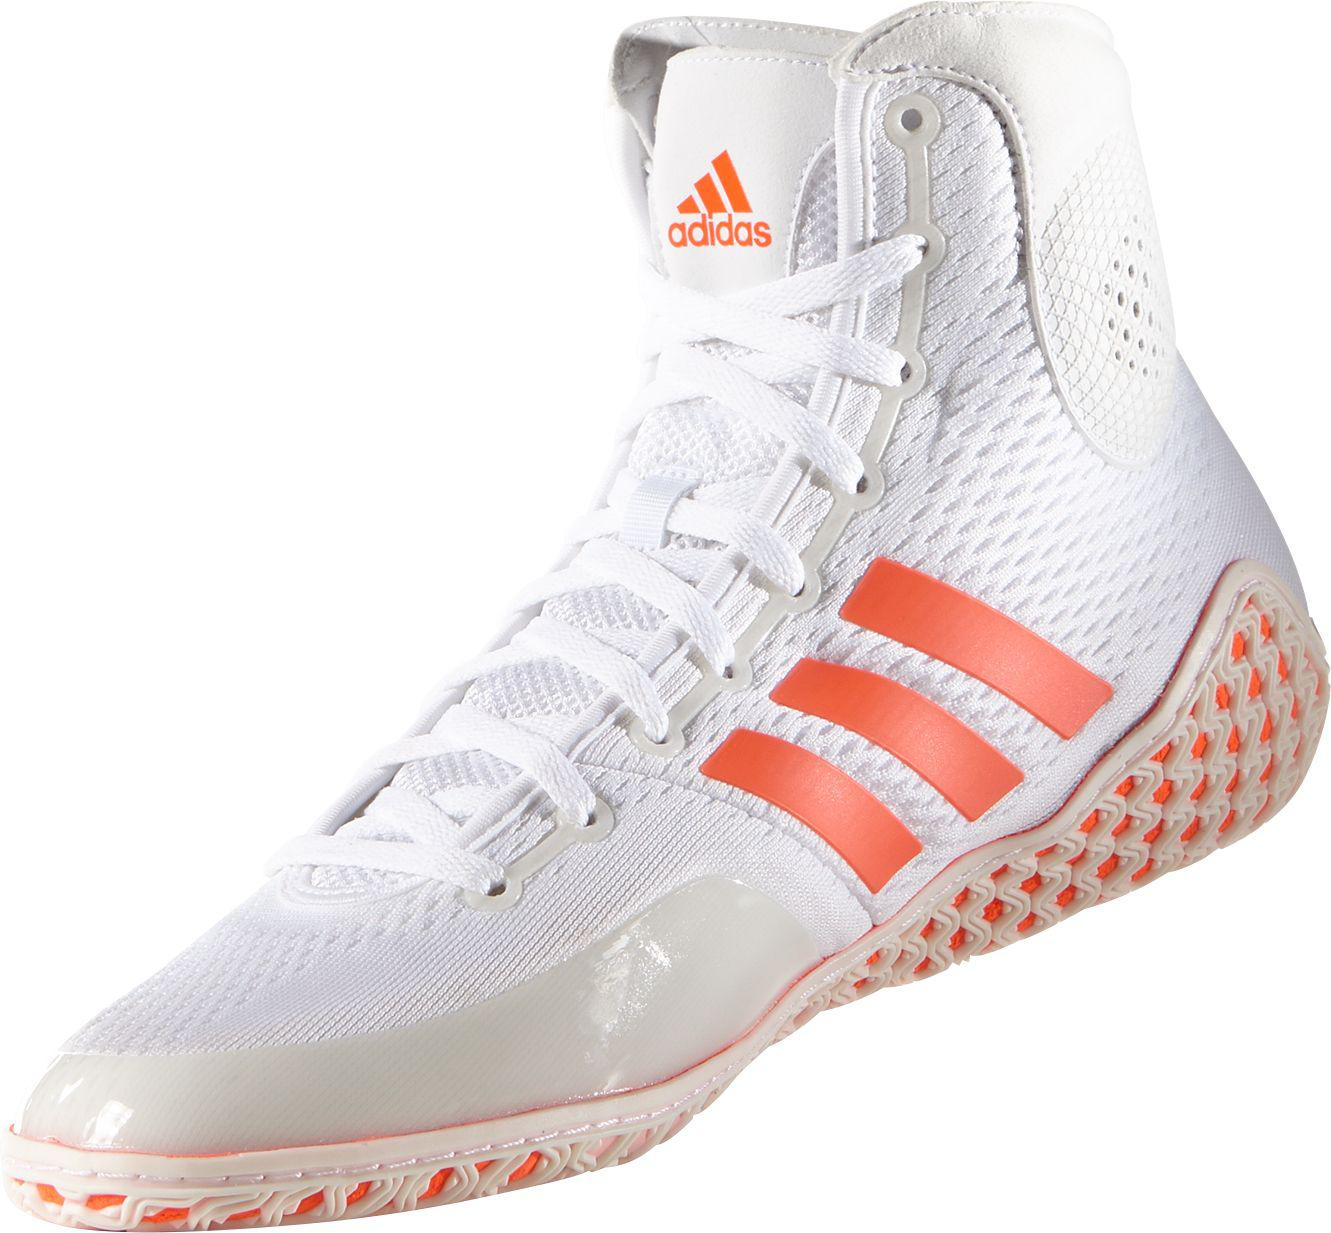 adidas Tech Fall Wrestling Shoes in